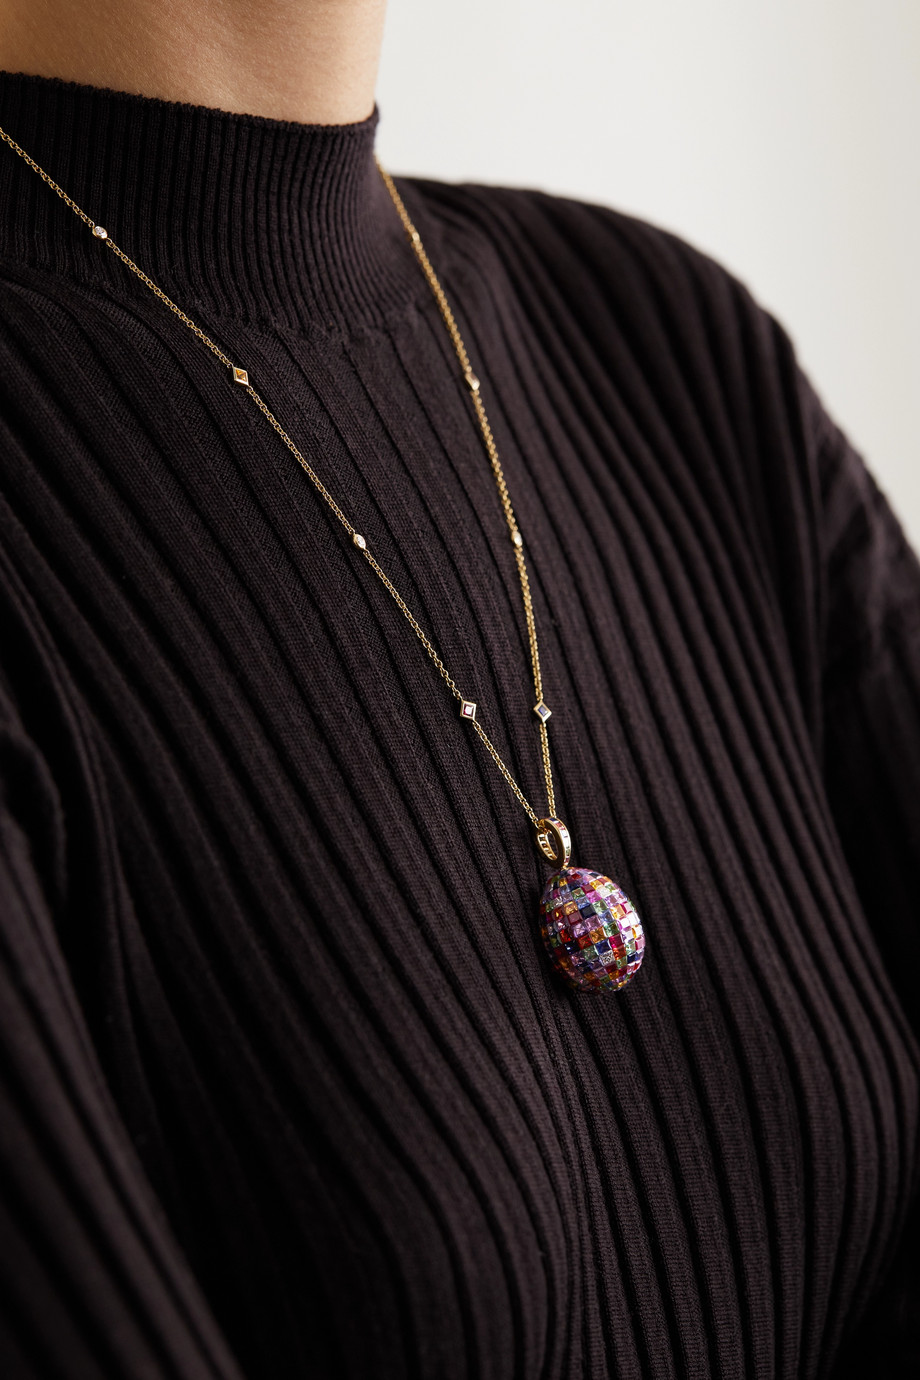 FABERGÉ Imperial 18-karat gold multi-stone necklace